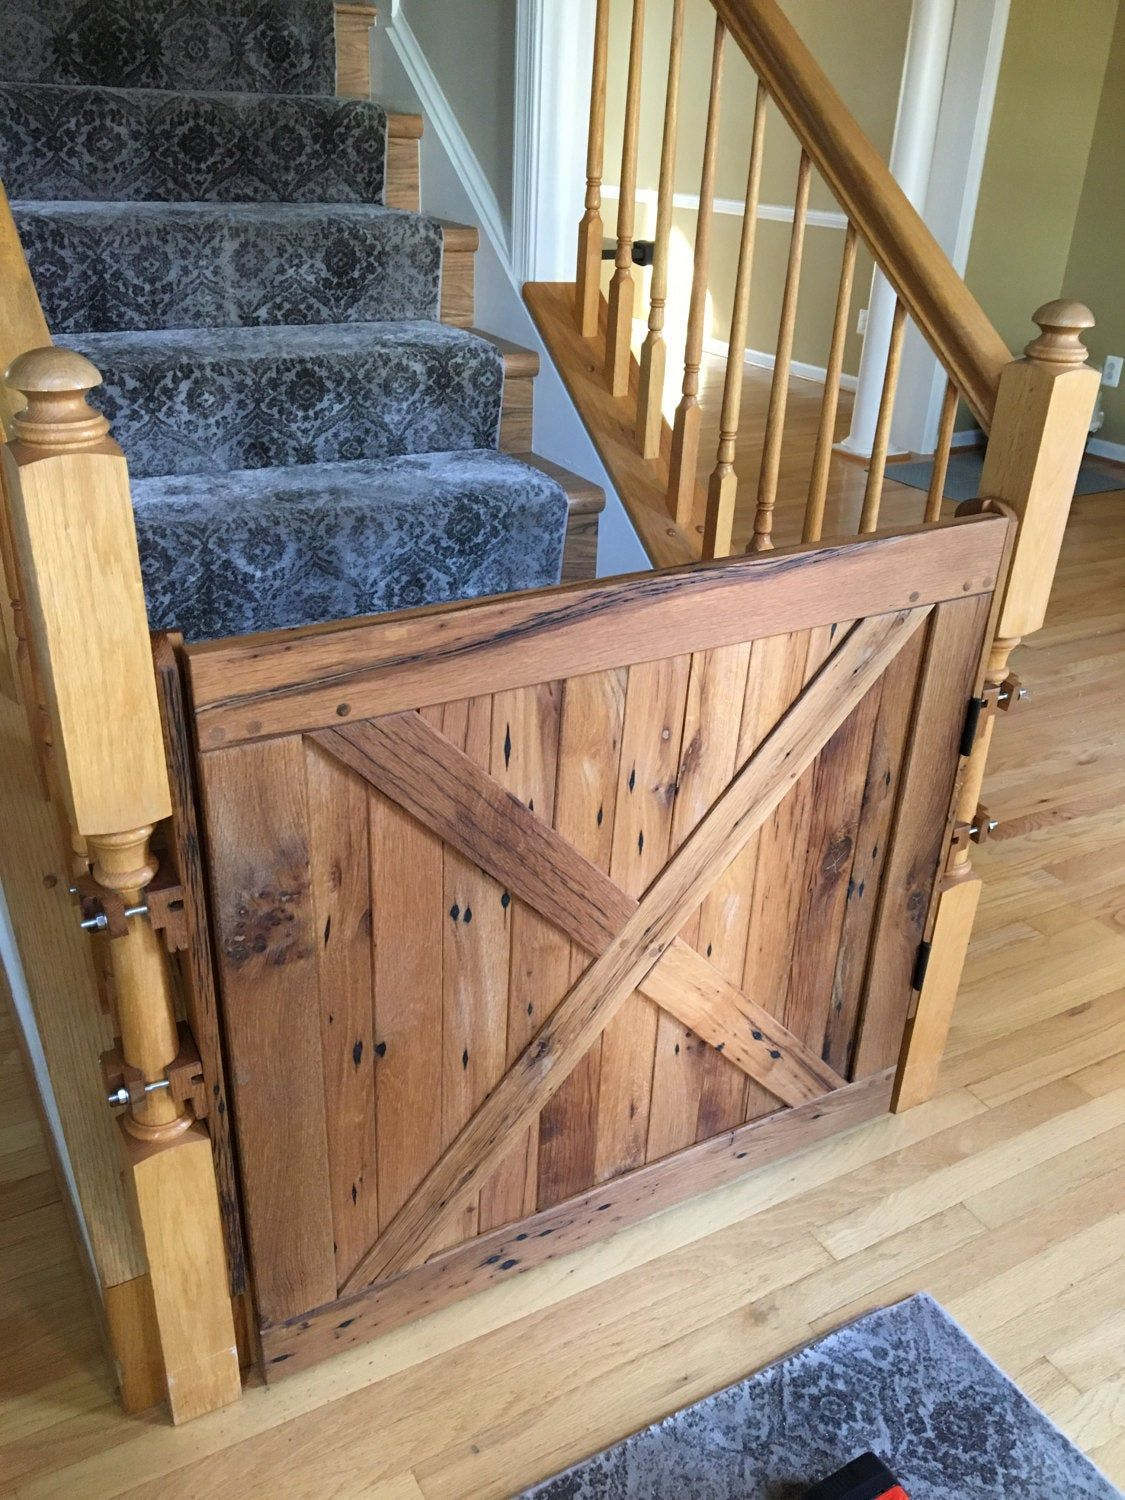 Baby Gate For Stairs in 2020 Barn door baby gate, Baby